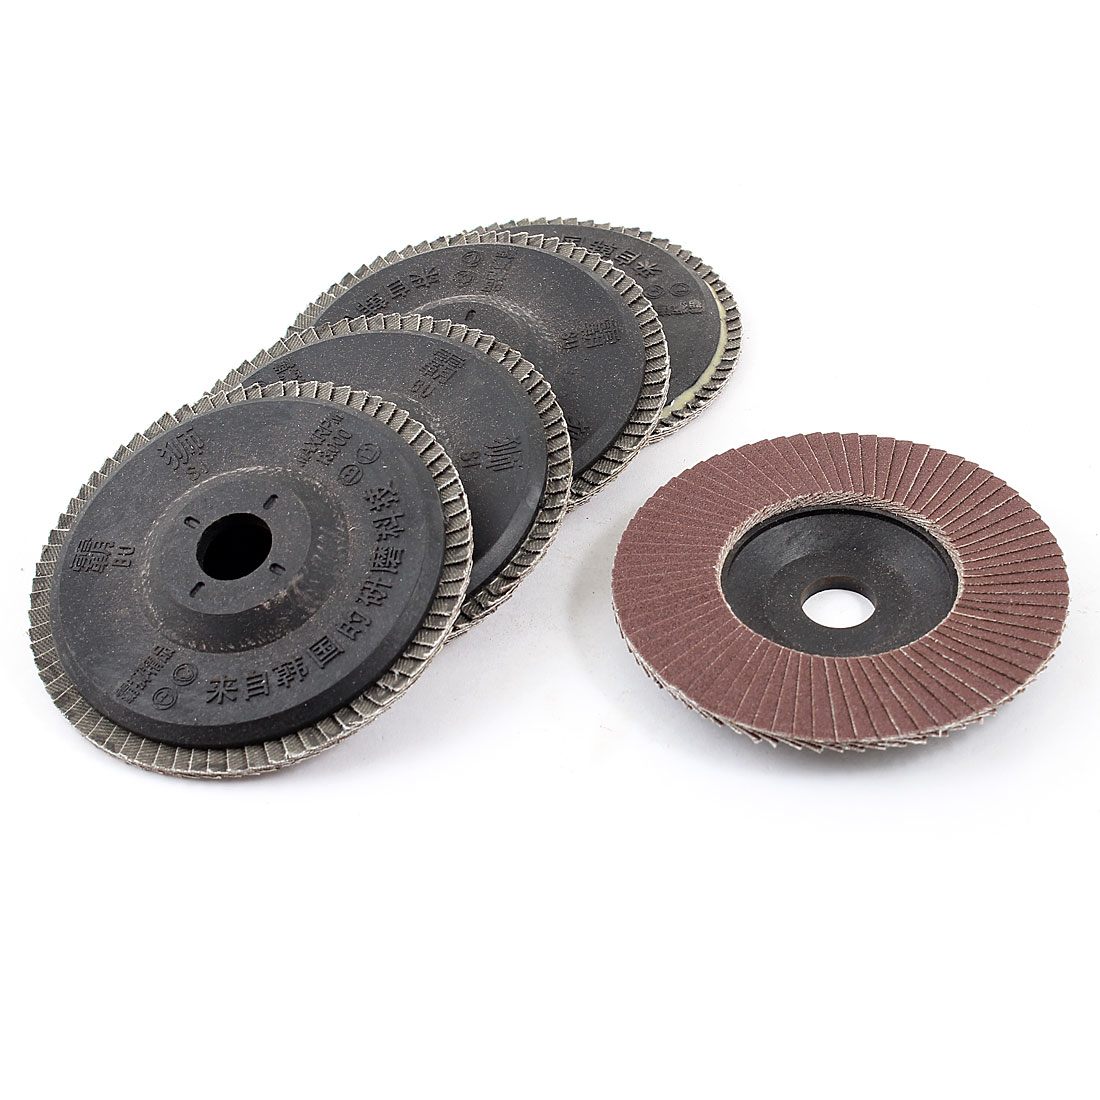 5-Pcs-4-Outside-Dia-120-Fan-Type-Grit-Flap-Sanding-Discs-Polishing-Wheels